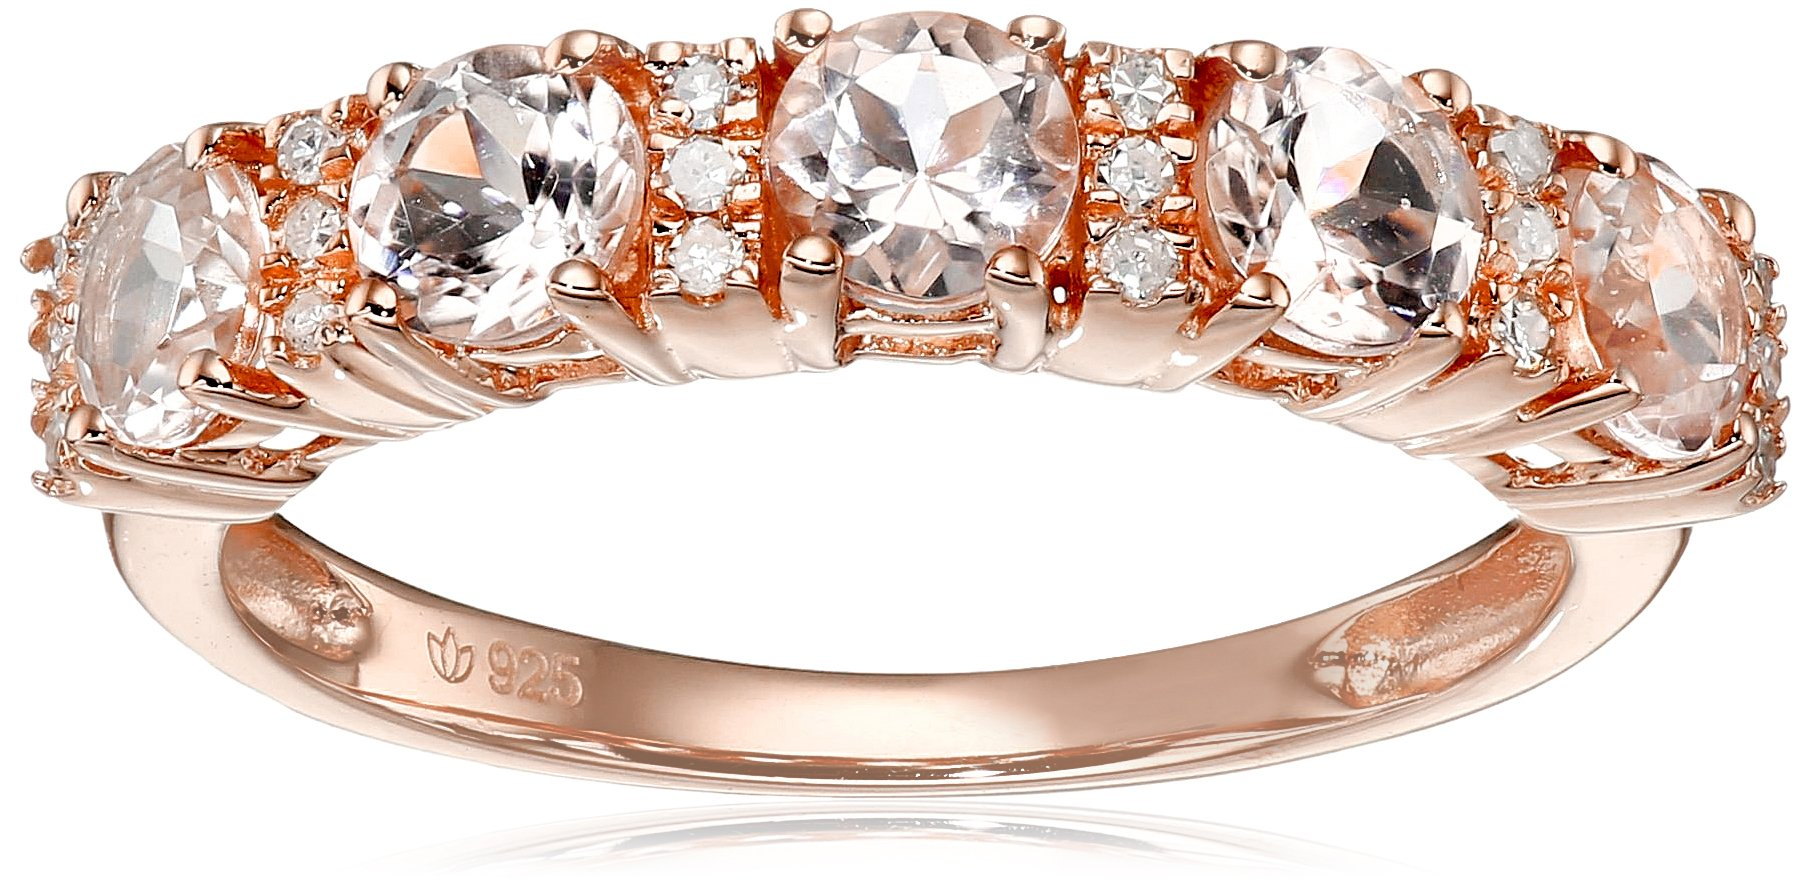 Rose Gold-Plated Silver Morganite and Diamond 5-Stone Band Stackable Ring(0.08 cttw, H-I Color, I1-I2 Clarity), Size 7